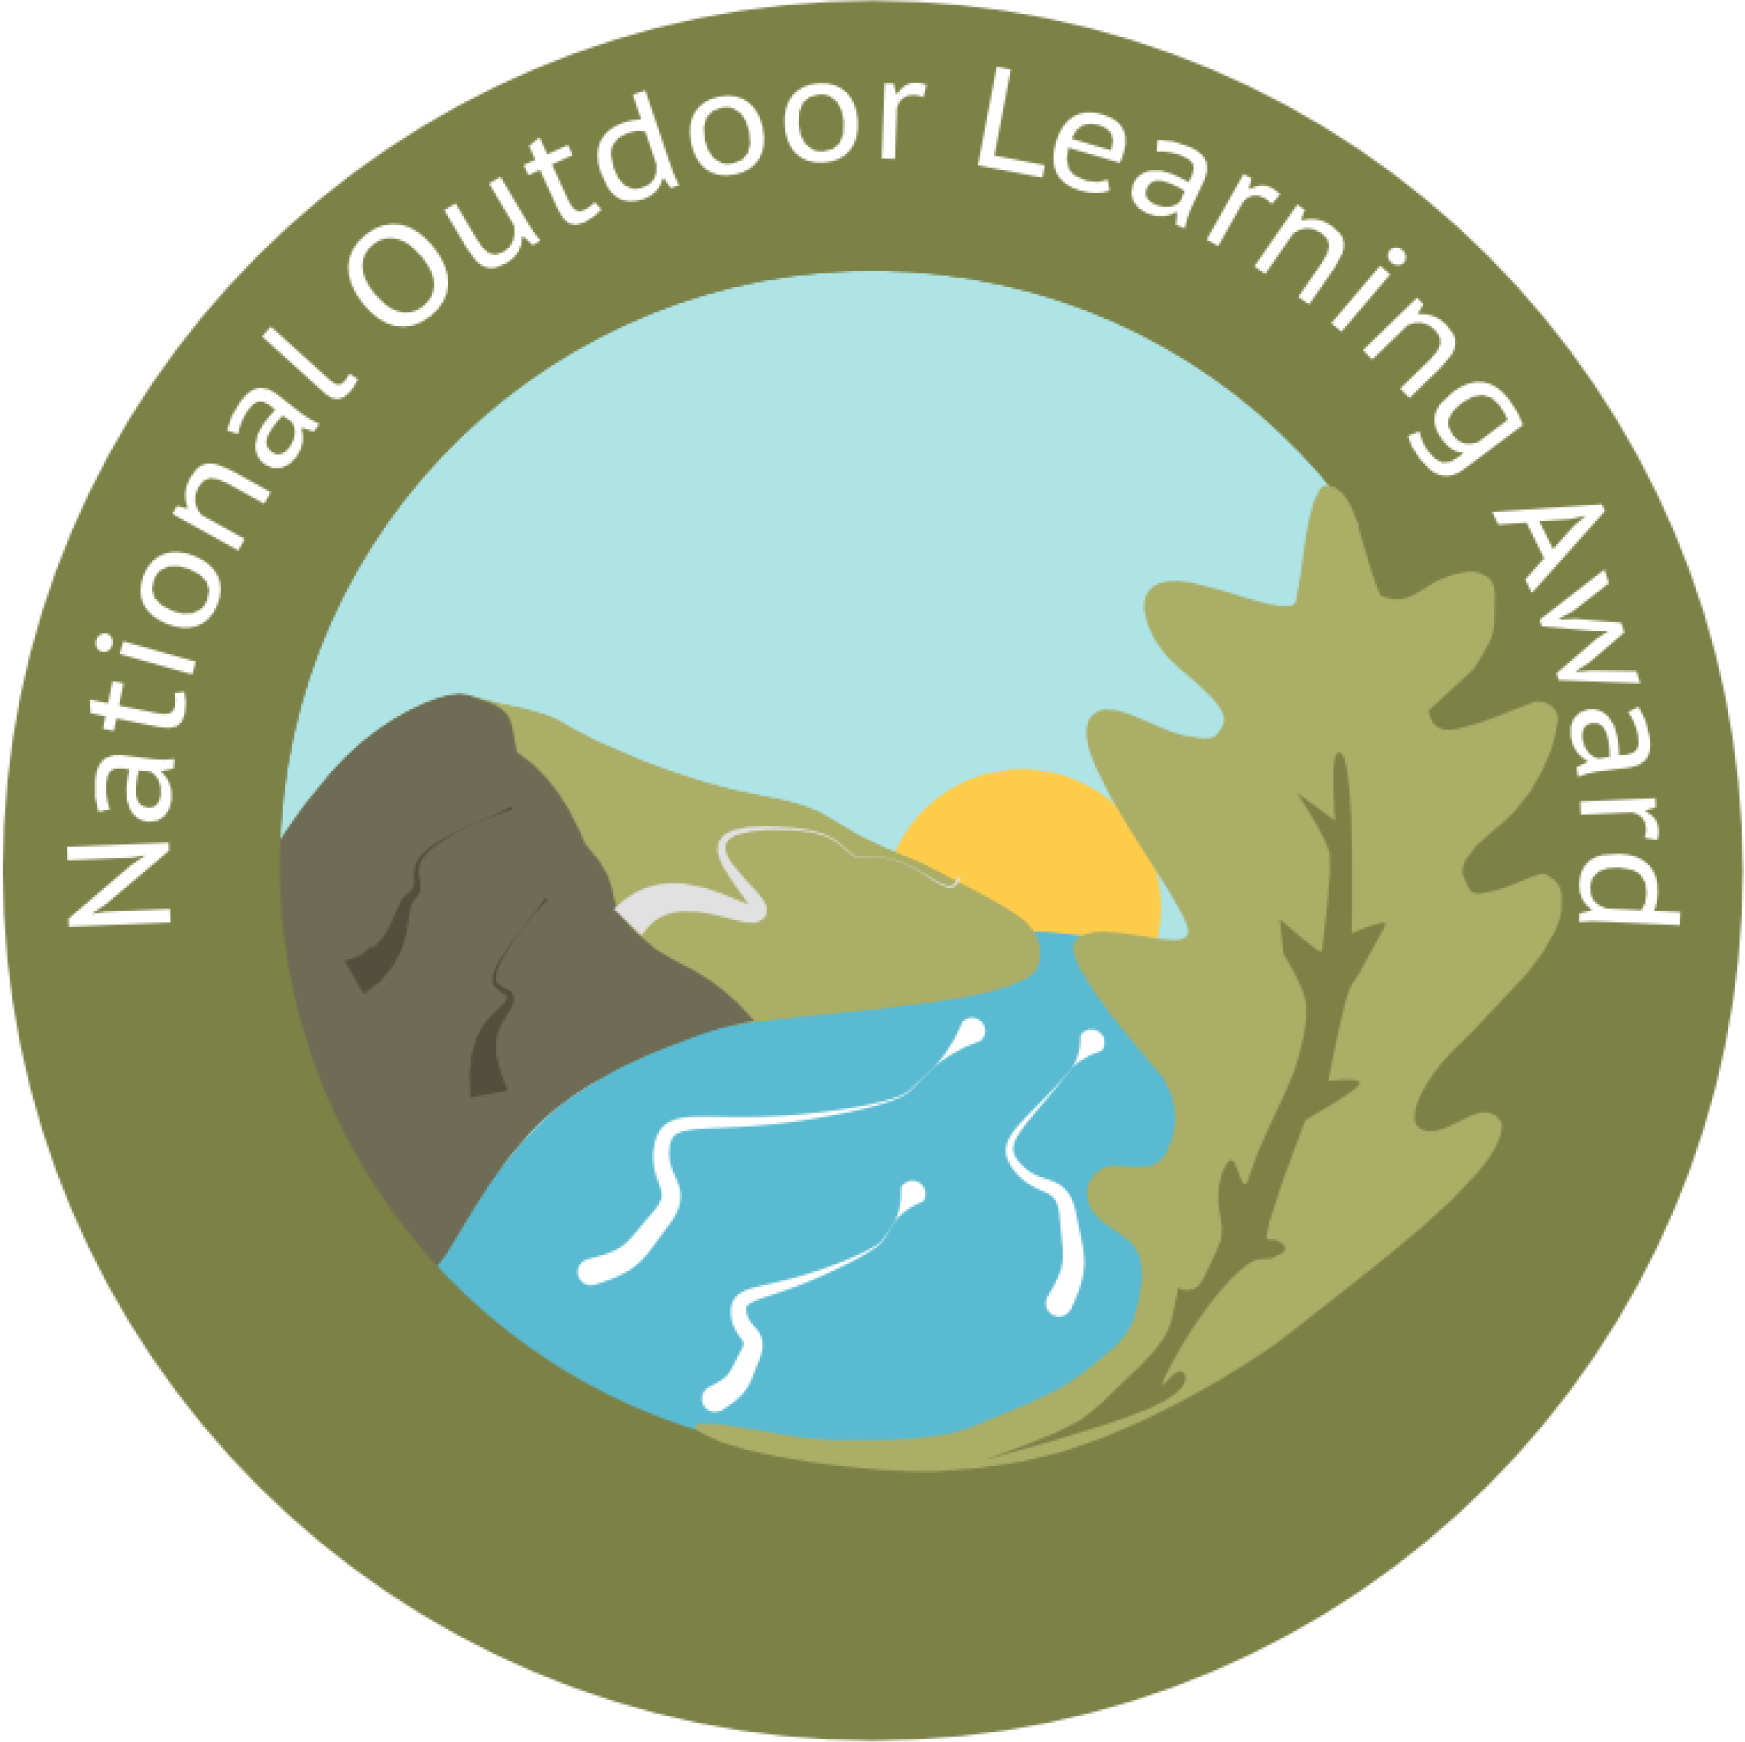 National Outdoor Learning Award